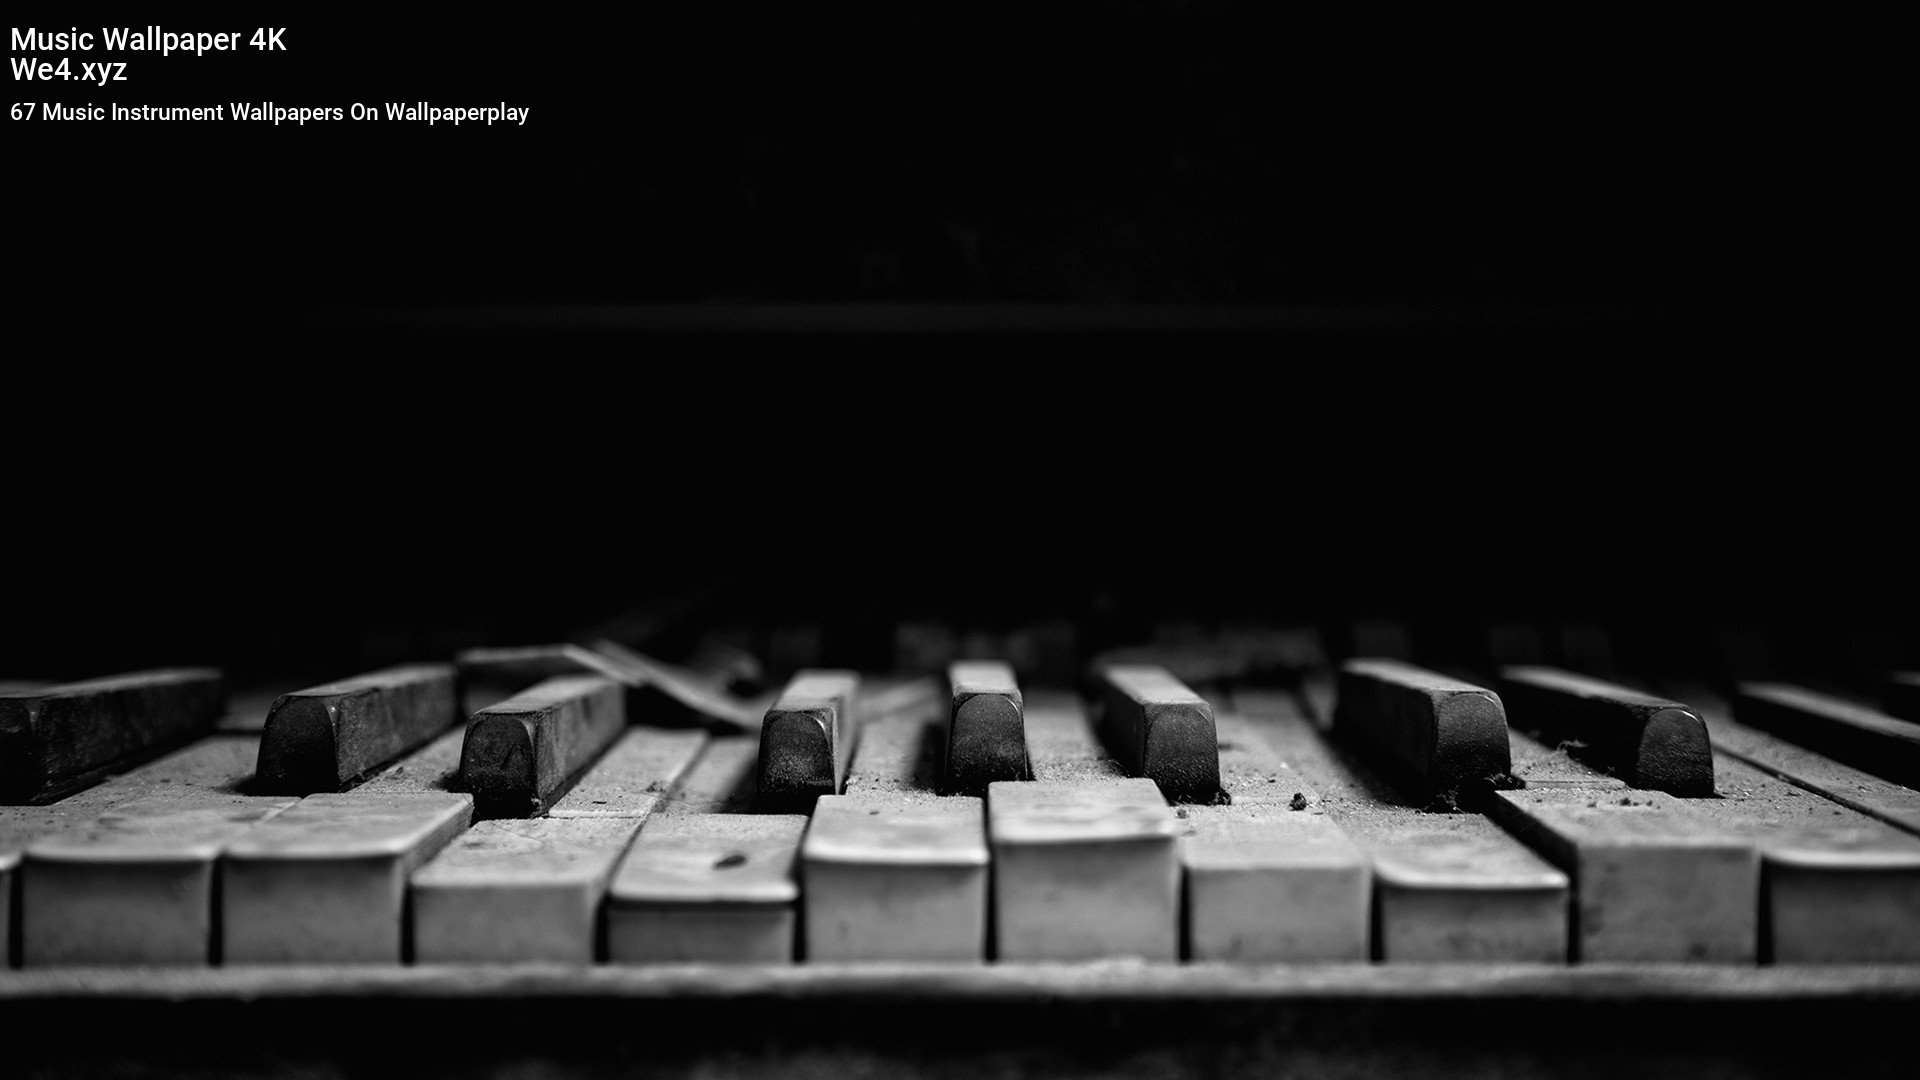 Music Wallpaper 4k Music Wallpaper Piano Keys Piano Photography